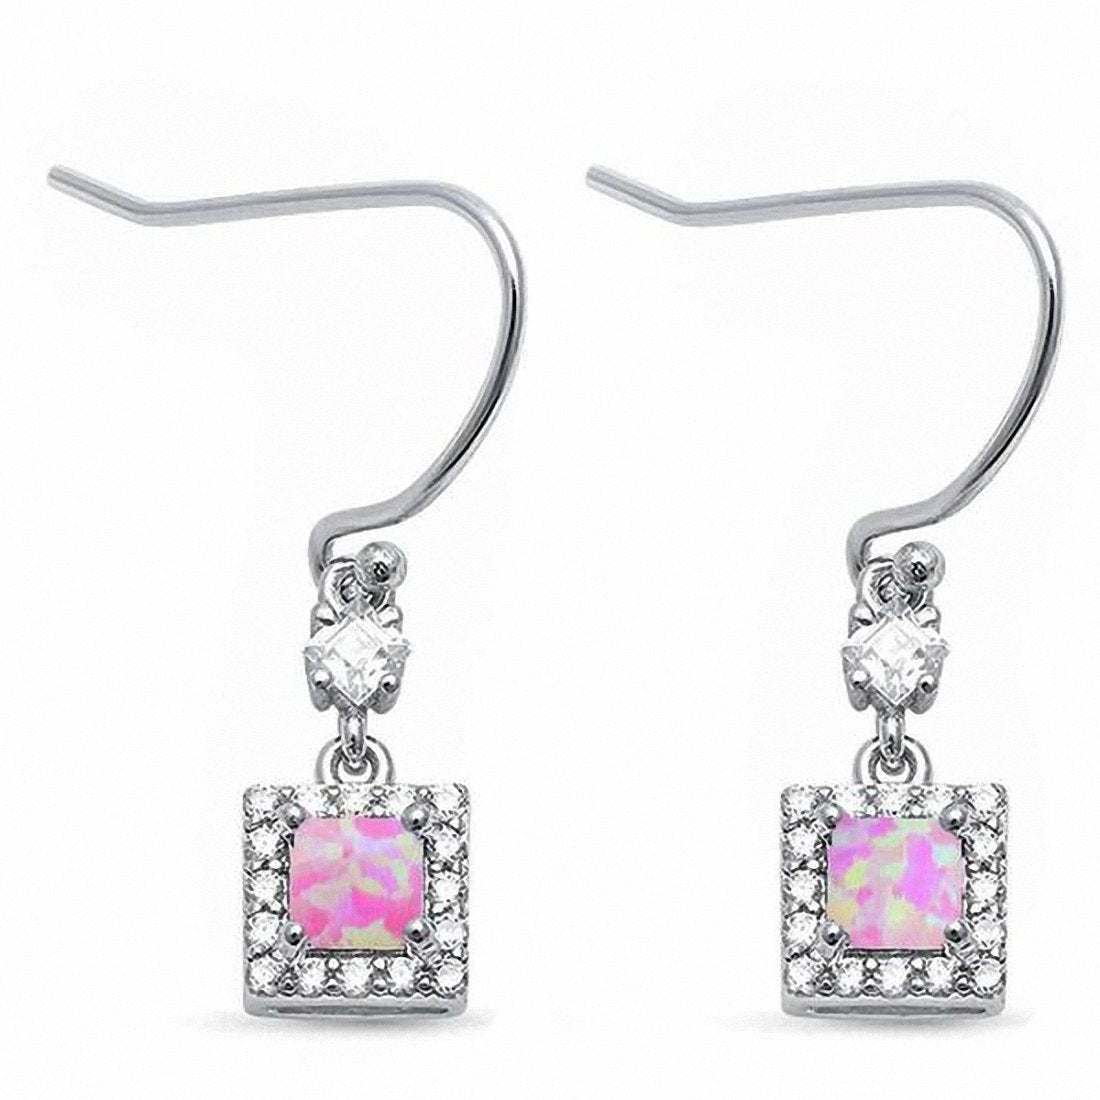 25mm Halo Drop Dangle Earrings Princess Square Created Opal Round CZ 925 Sterling Silver Fish Hook Choose Color